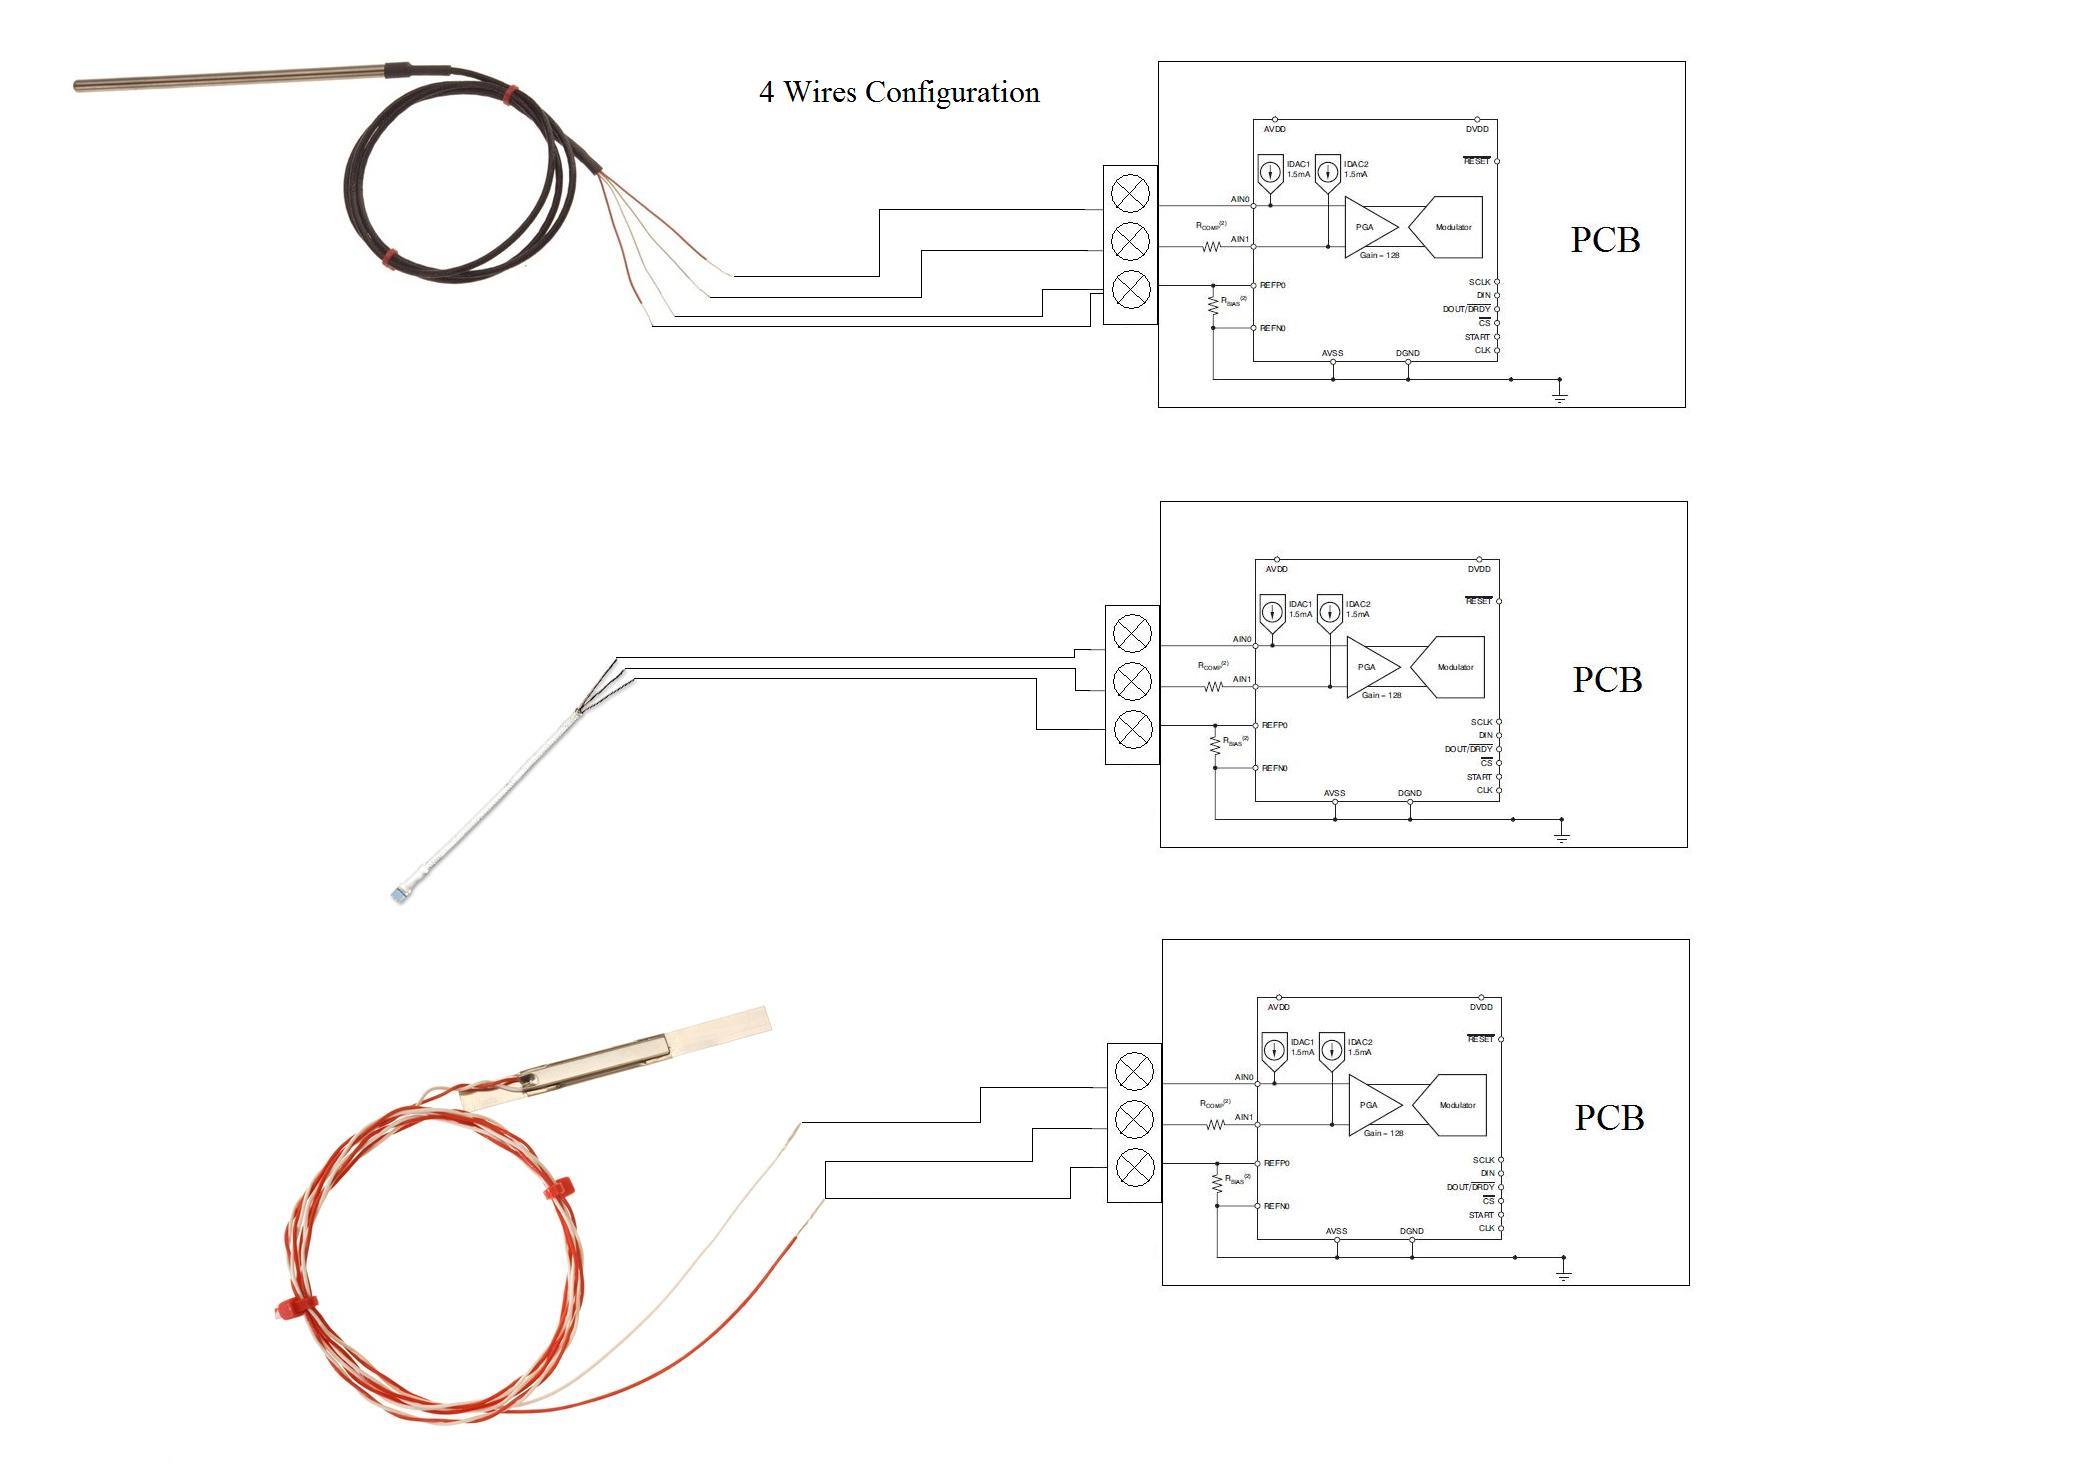 CE_9061] Wire Pt100 Free Download Wiring Diagrams Pictures Wiring Schematic  Wiring | Pt100 3 Wire Rtd Wiring Diagram |  | Lave Vell Jebrp Mohammedshrine Librar Wiring 101